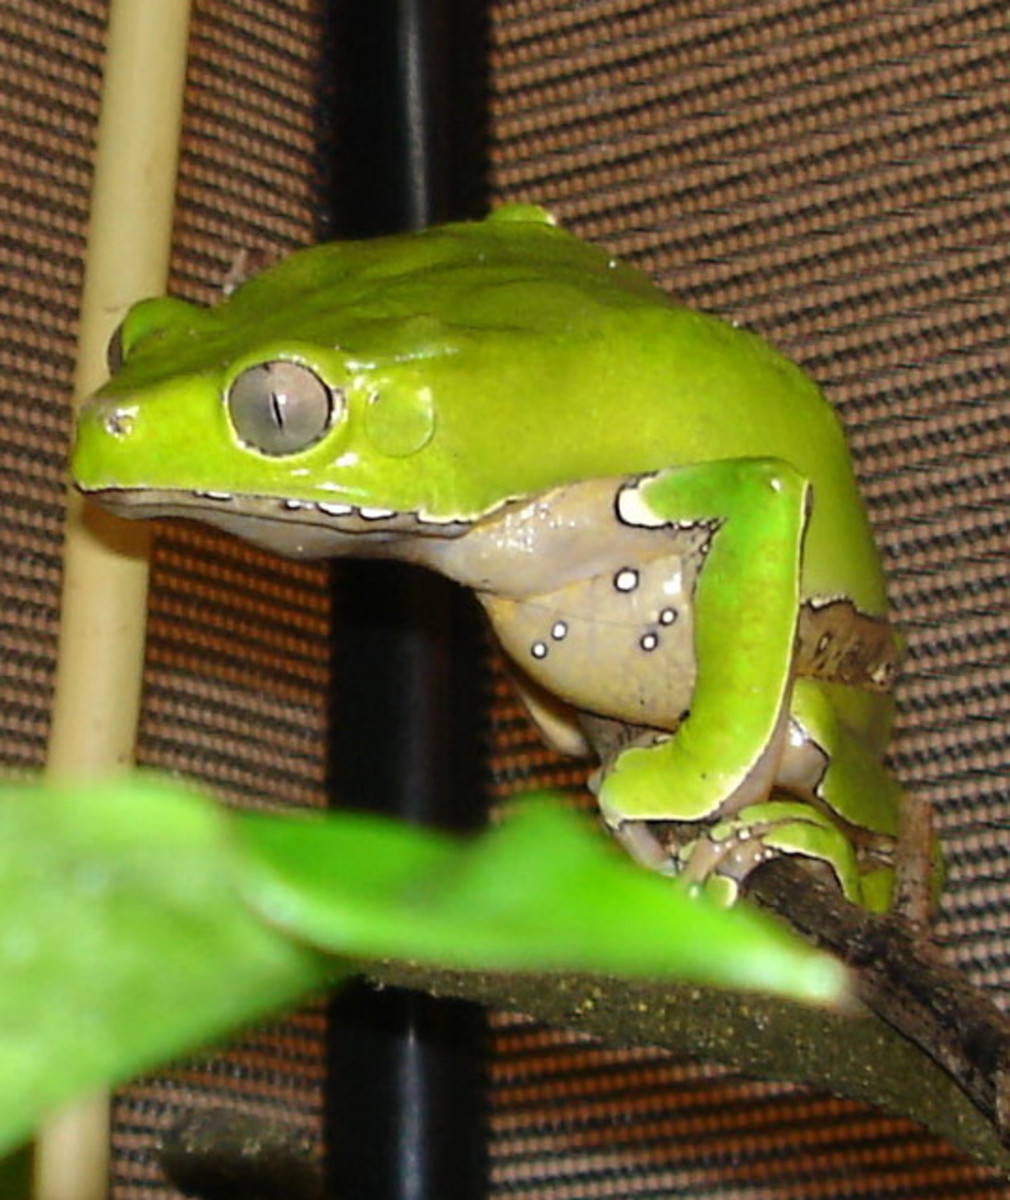 My giant waxy monkey tree frog, Phyllomedusa bicolor, also known as Zoidberg